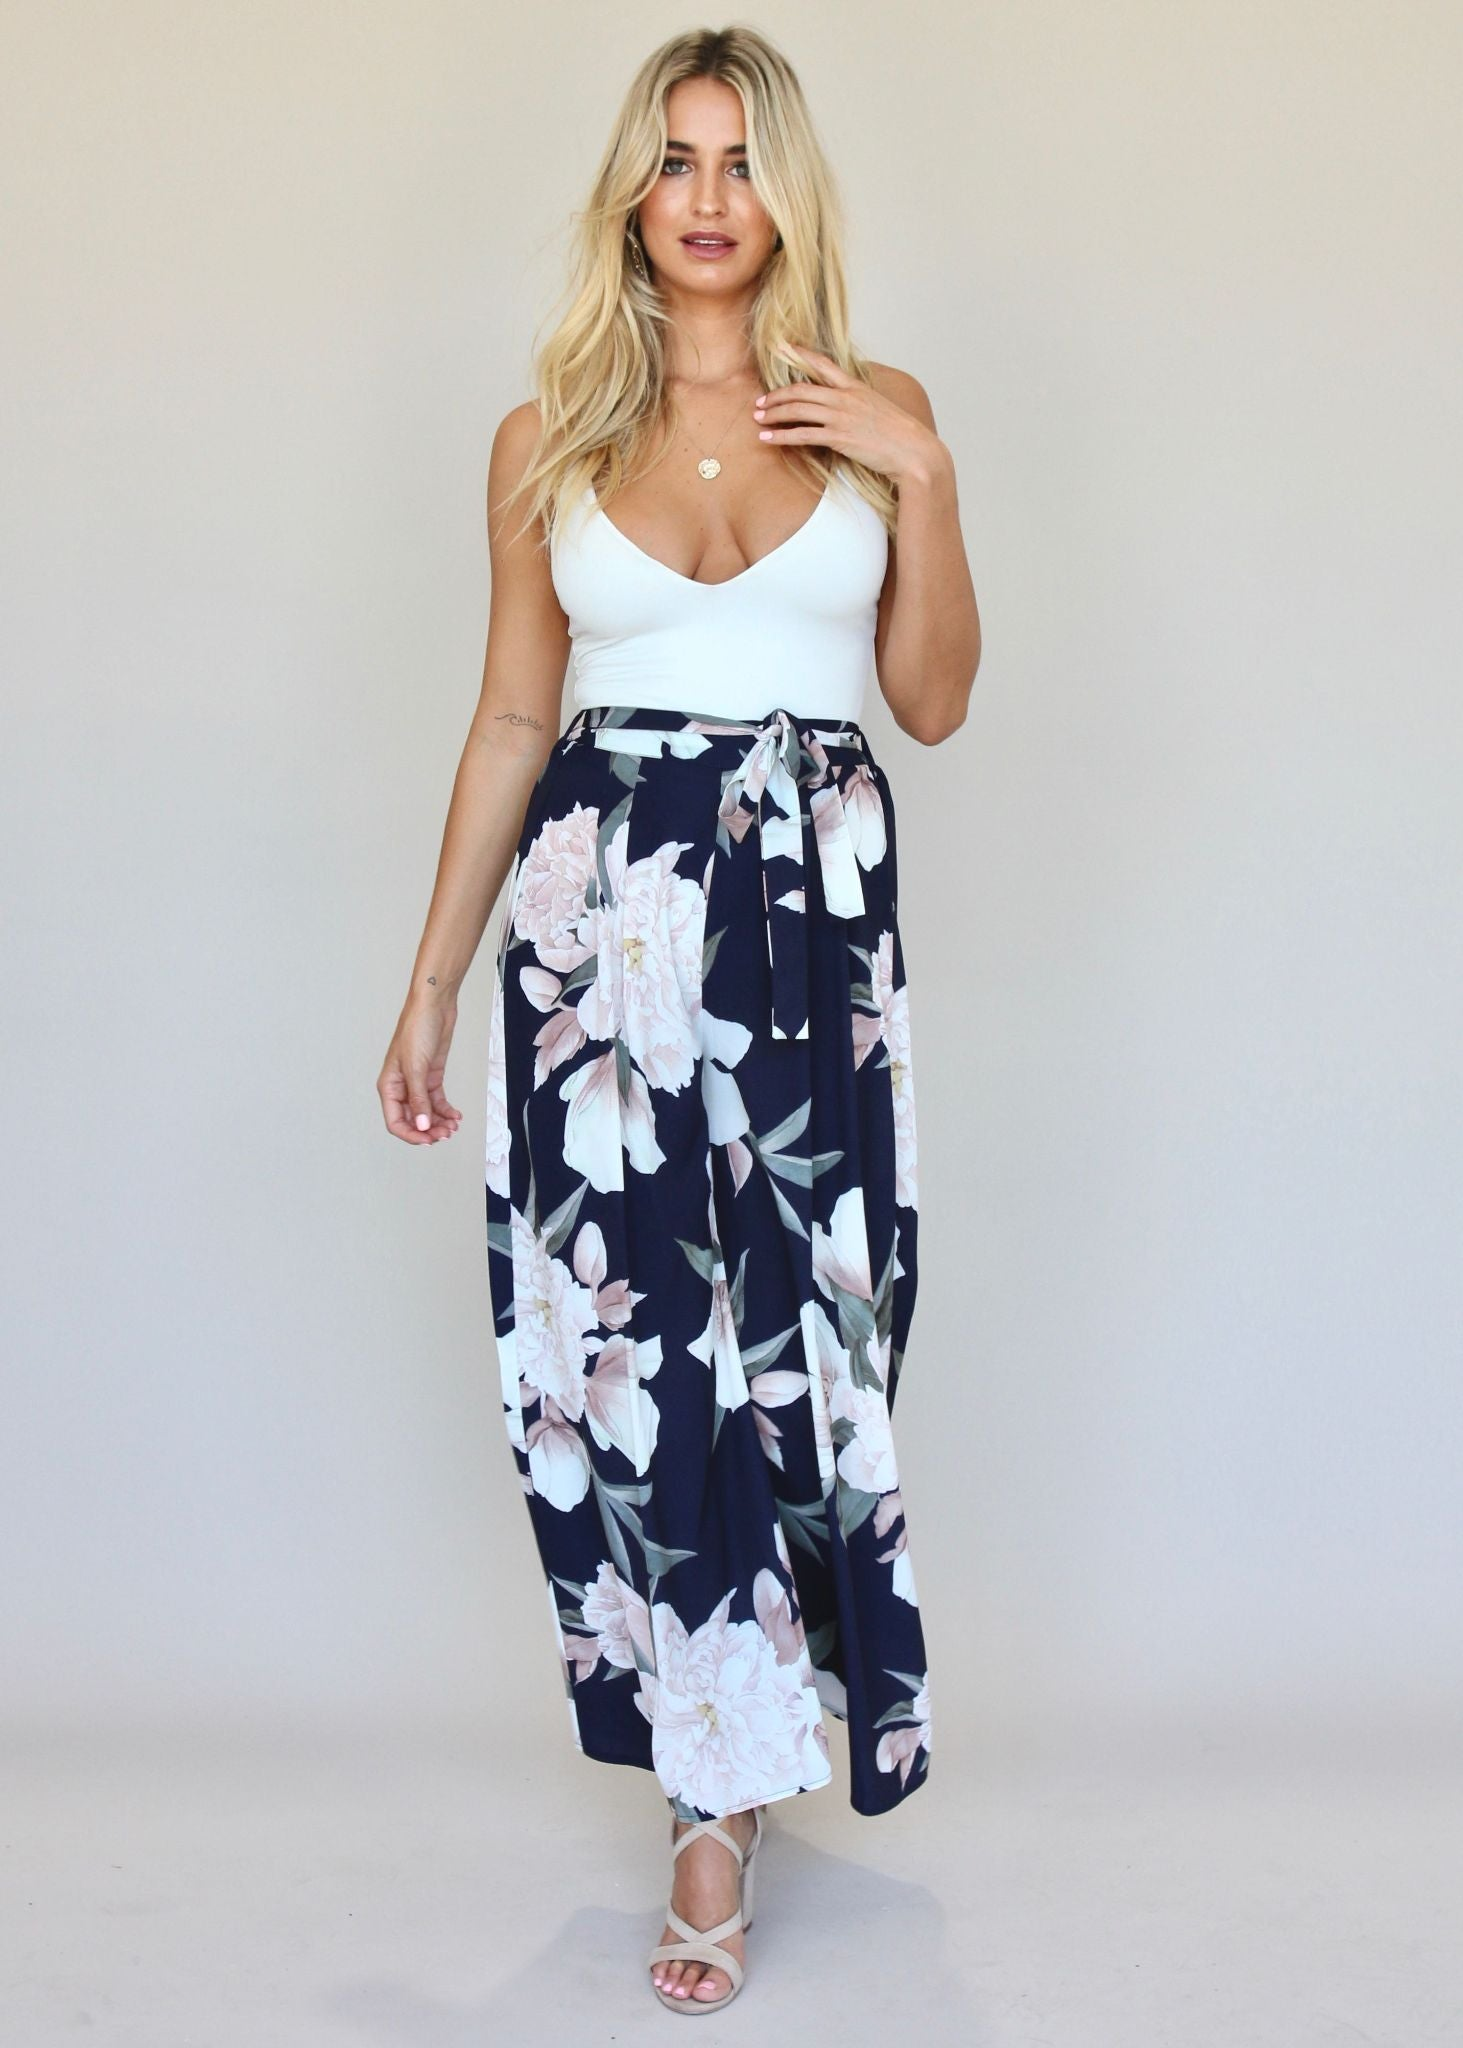 Little Love Pants - Navy Floral